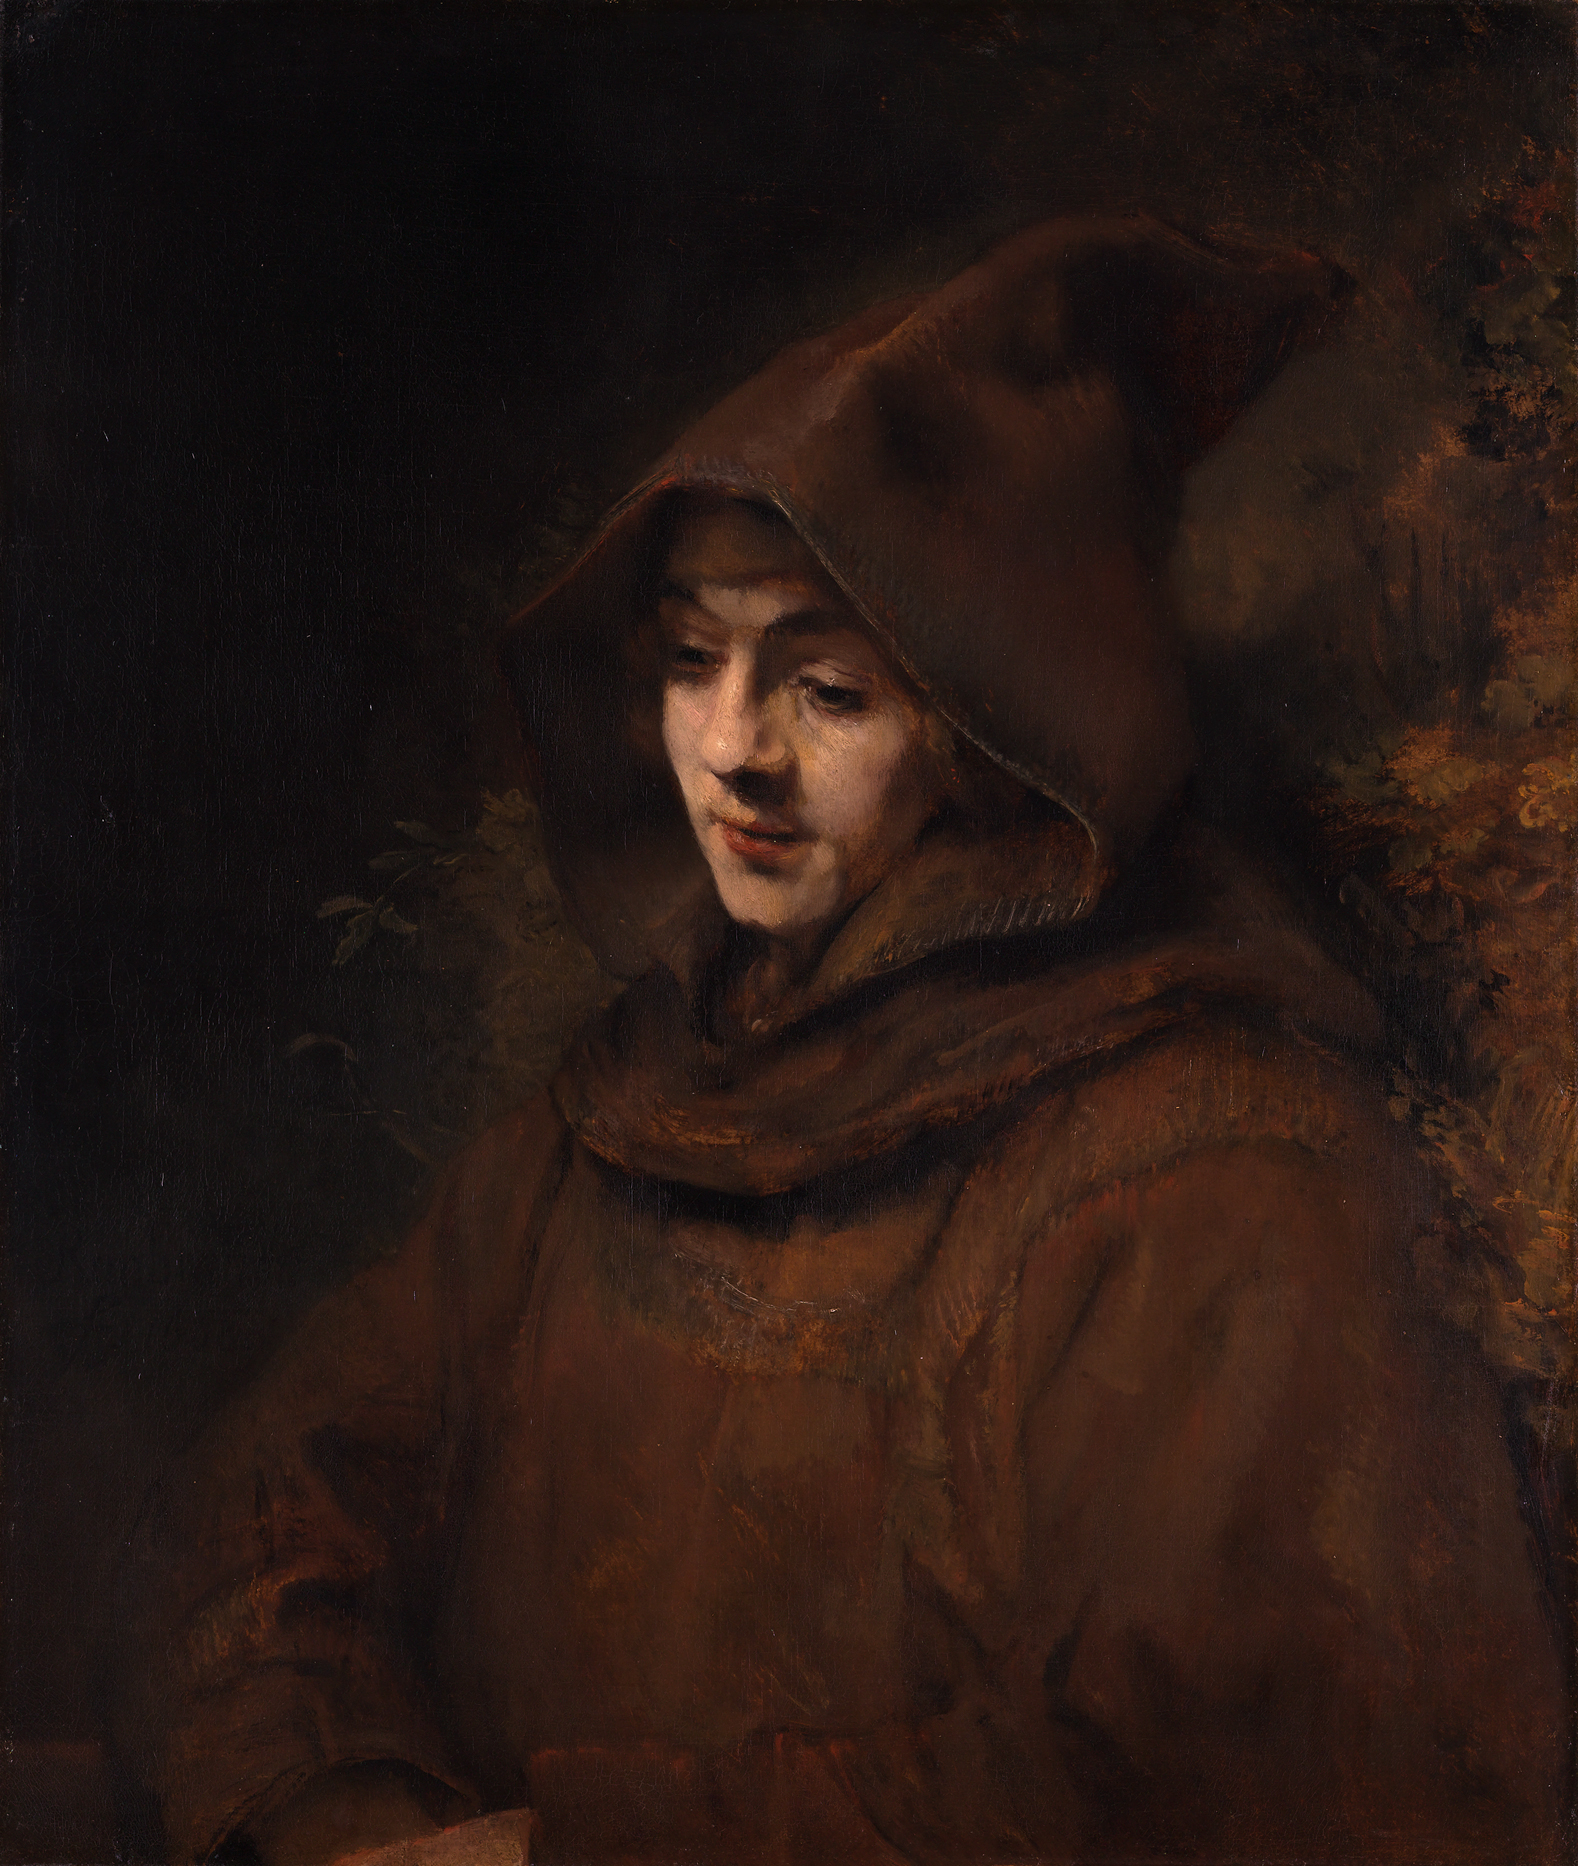 rembrandt online dating Privacy and cookiesjobsdatingoffersshoppuzzlesinvestor  rembrandt the  night watch: the real story behind the 'kids on phones' photo  school kids in  front of rembrandt's most famous painting is being shared online for.